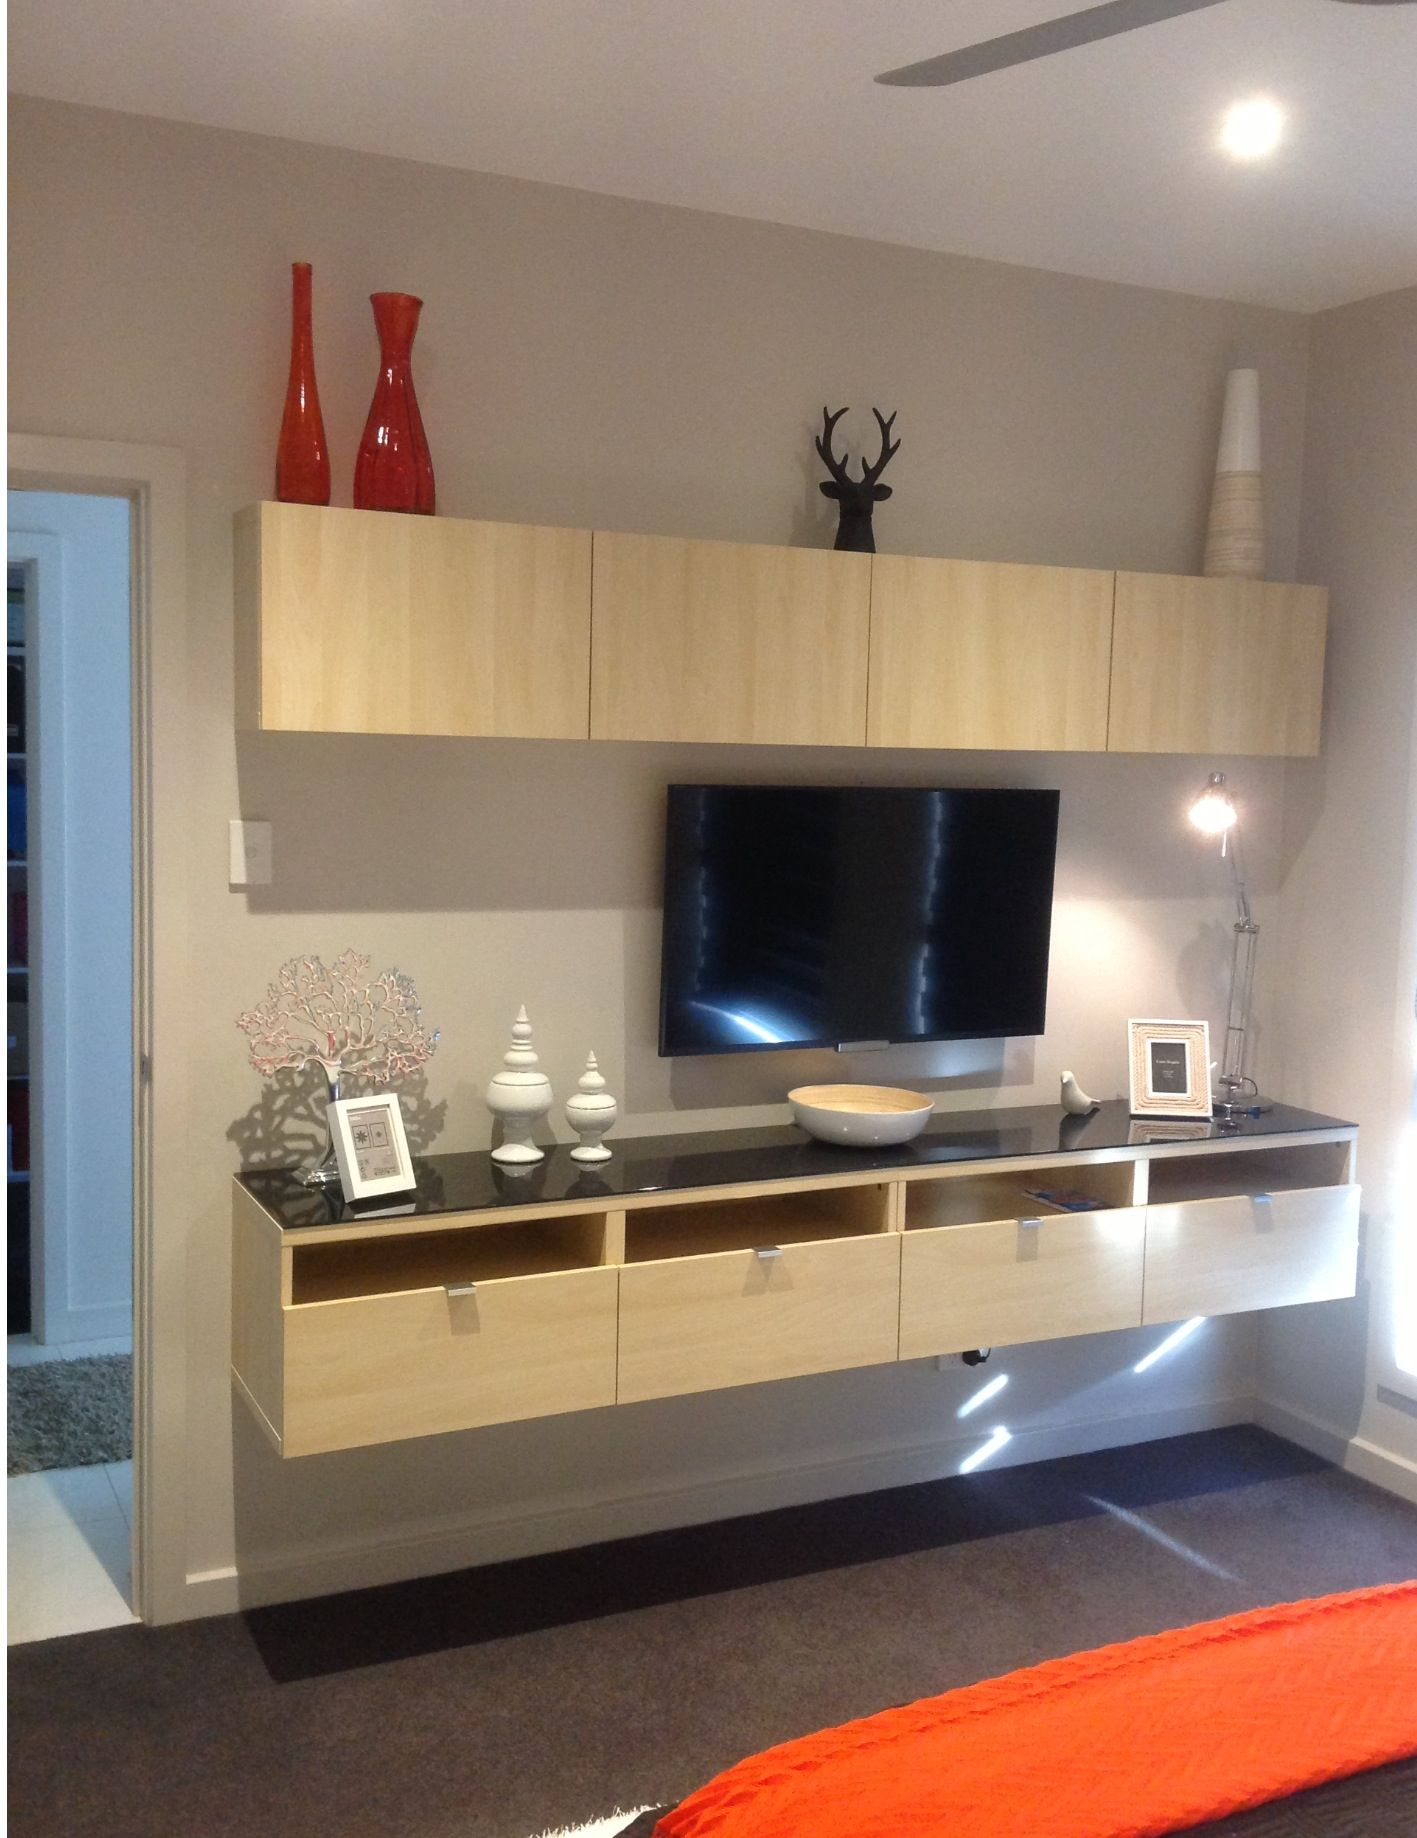 Pin By Cathy Elsmore Interiors On Home Decorating And Styling Projects I Ve Completed Ikea Floating Cabinet Floating Cabinets Master Bedroom